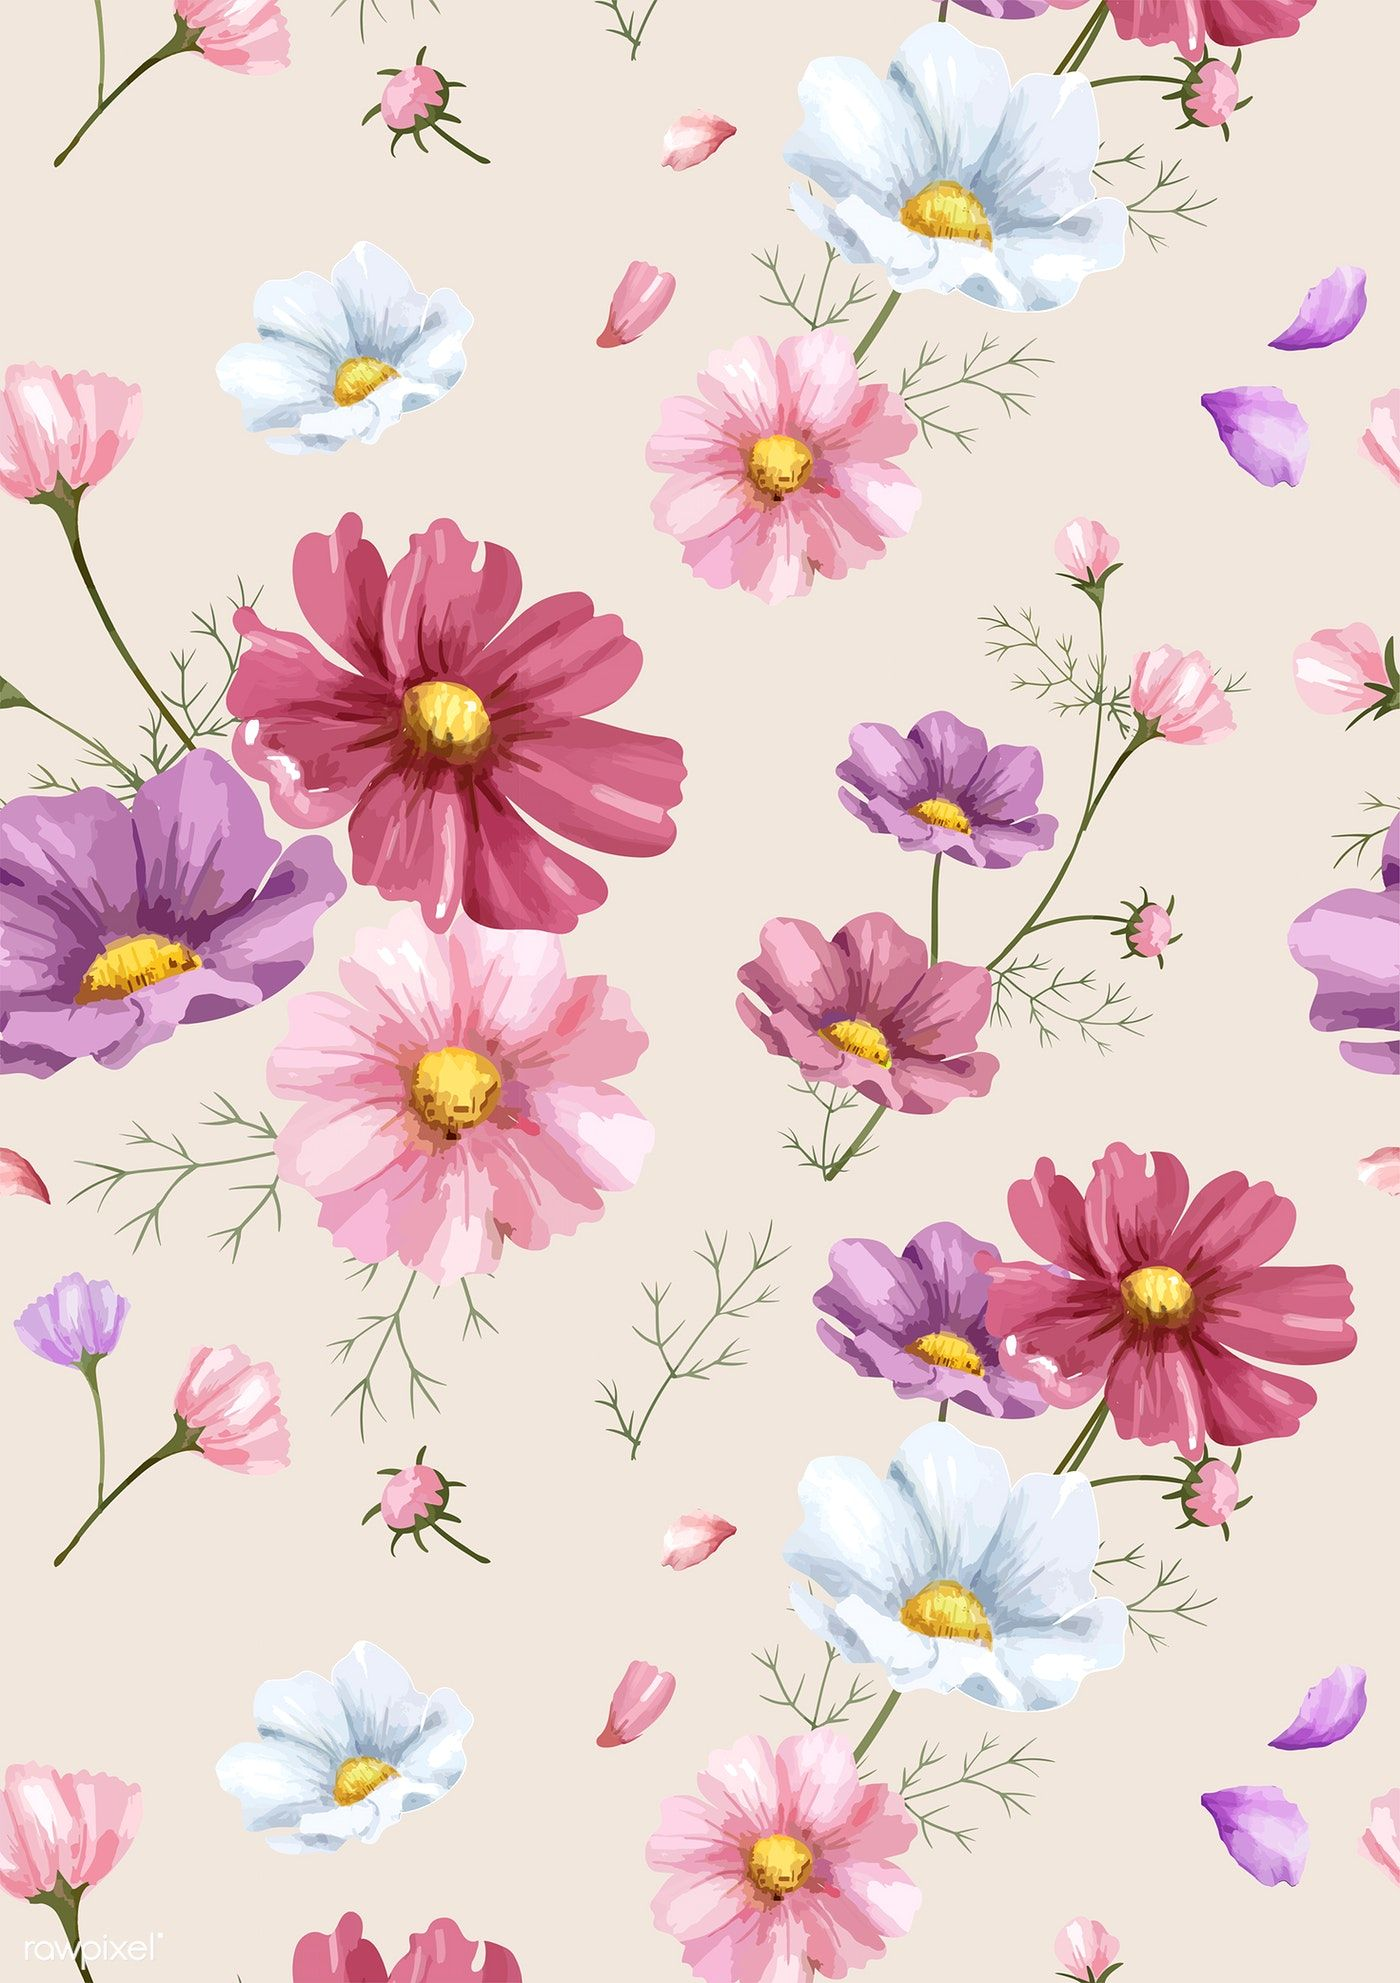 Download Premium Illustration Of Hand Drawn Cosmos Flower Pattern 421482 Flower Drawing Flower Drawing Design Watercolor Flowers